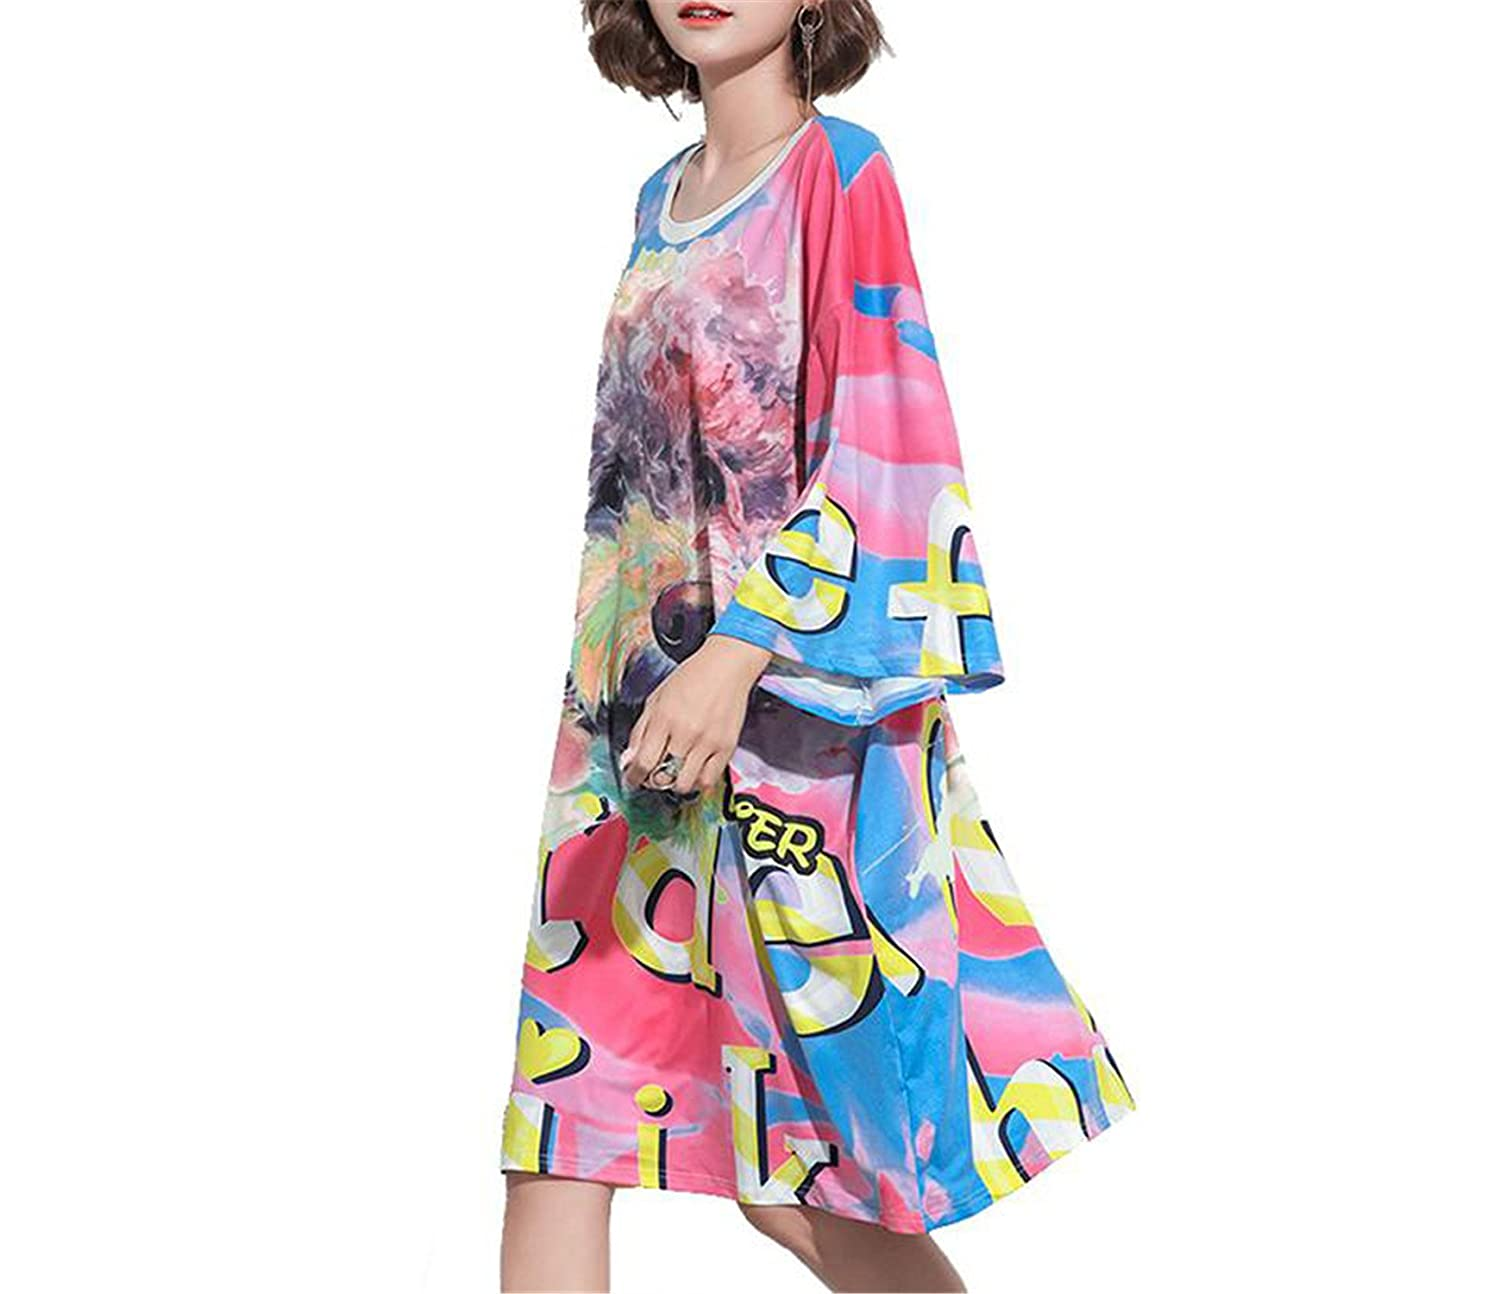 Chiffoned Plus Size Women 2018 Autumn Fashion Print Dress Casual Loose Female Shirt Dresses Tunics Long Tops 8839 L at Amazon Womens Clothing store: